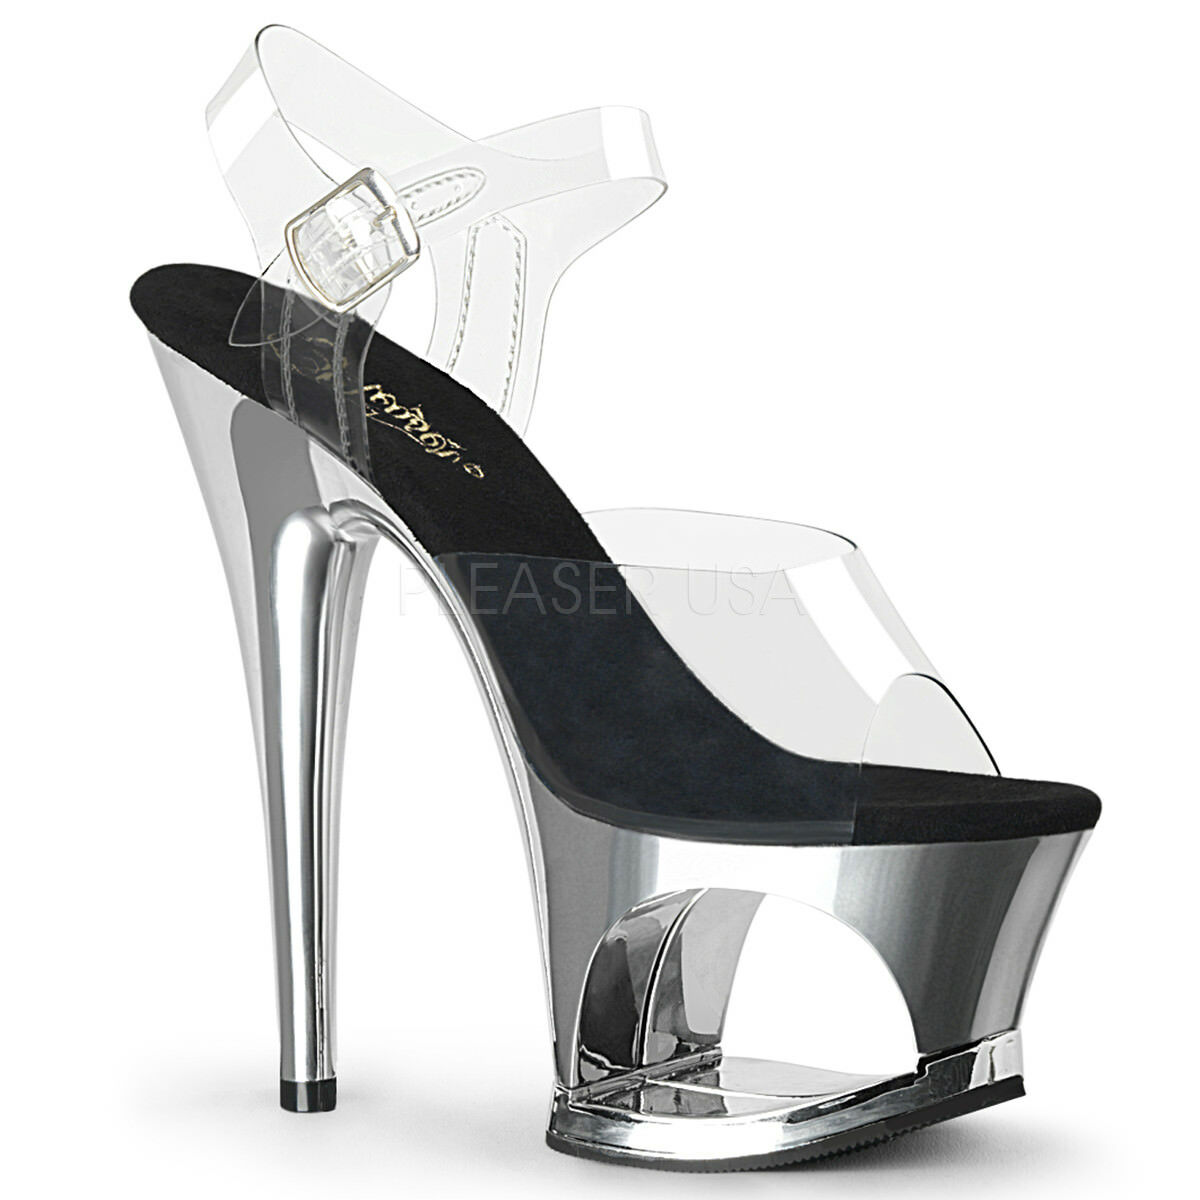 PLEASER MOON-708 CLEAR SILVER CHROME PLATFORM POLE DANCING SANDALS SANDALS SANDALS SHOES 7c00f1